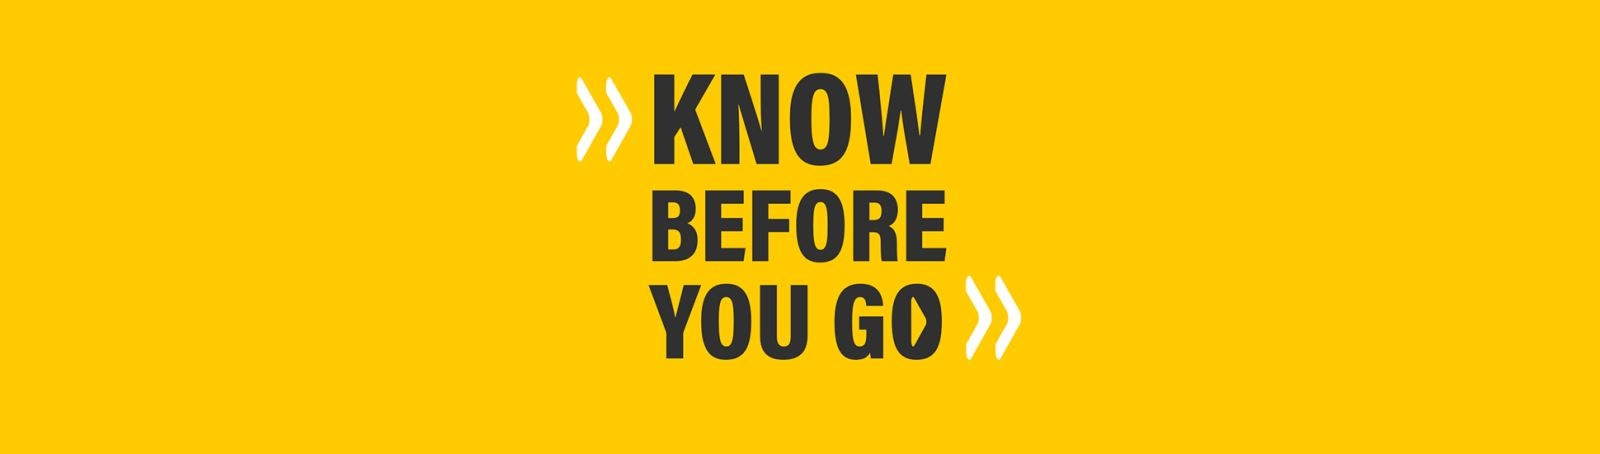 Know Before You Go Campaign Image